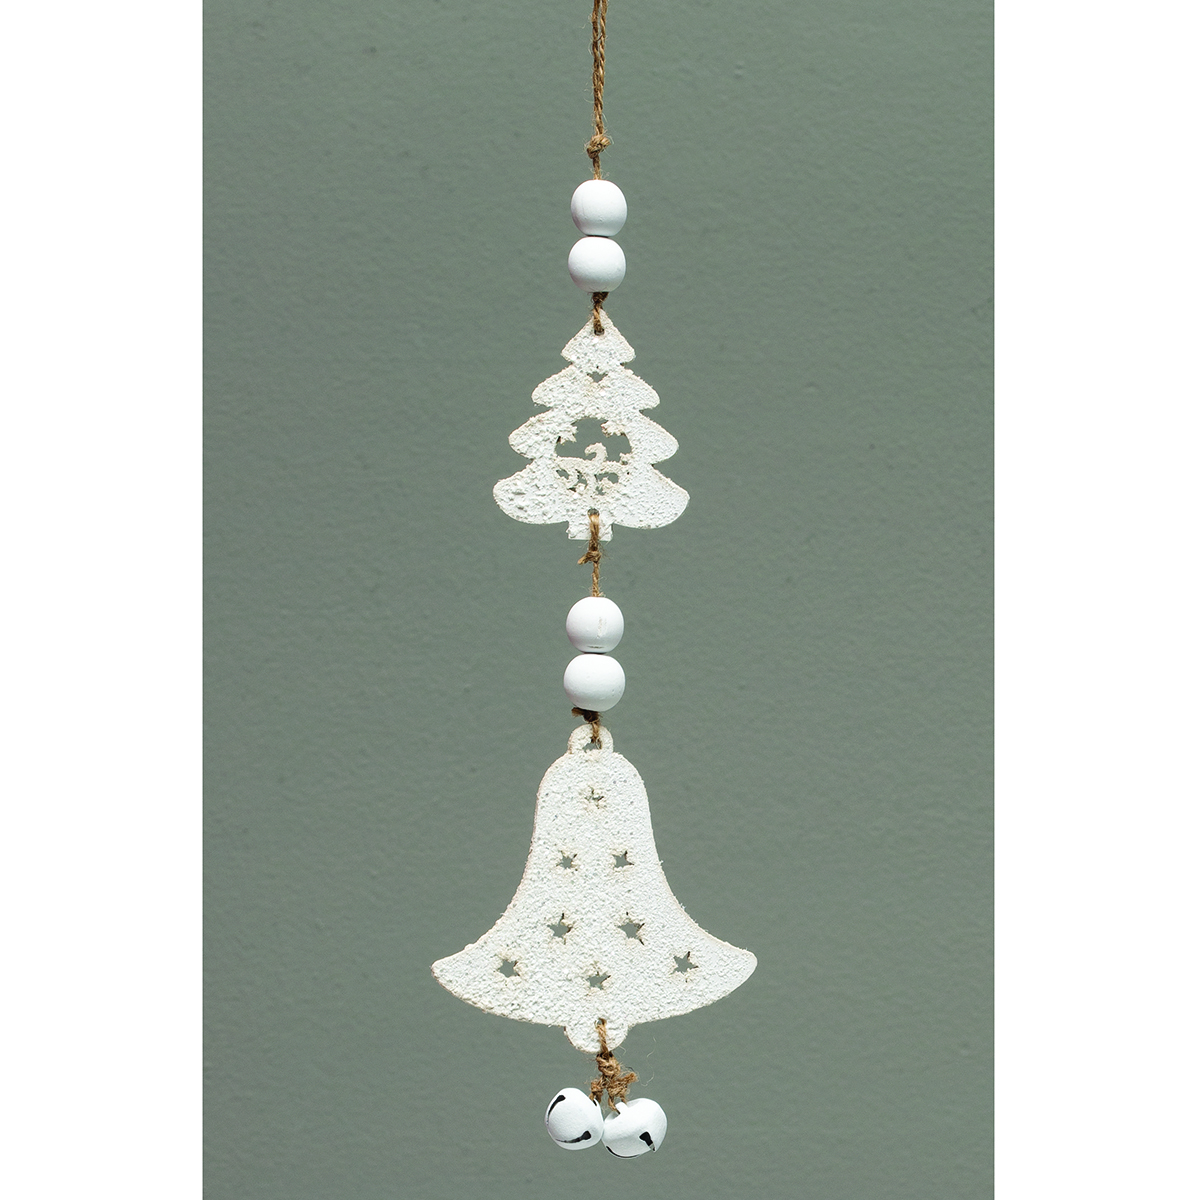 WHITE WOOD BELL DANGLE ORNAMENT